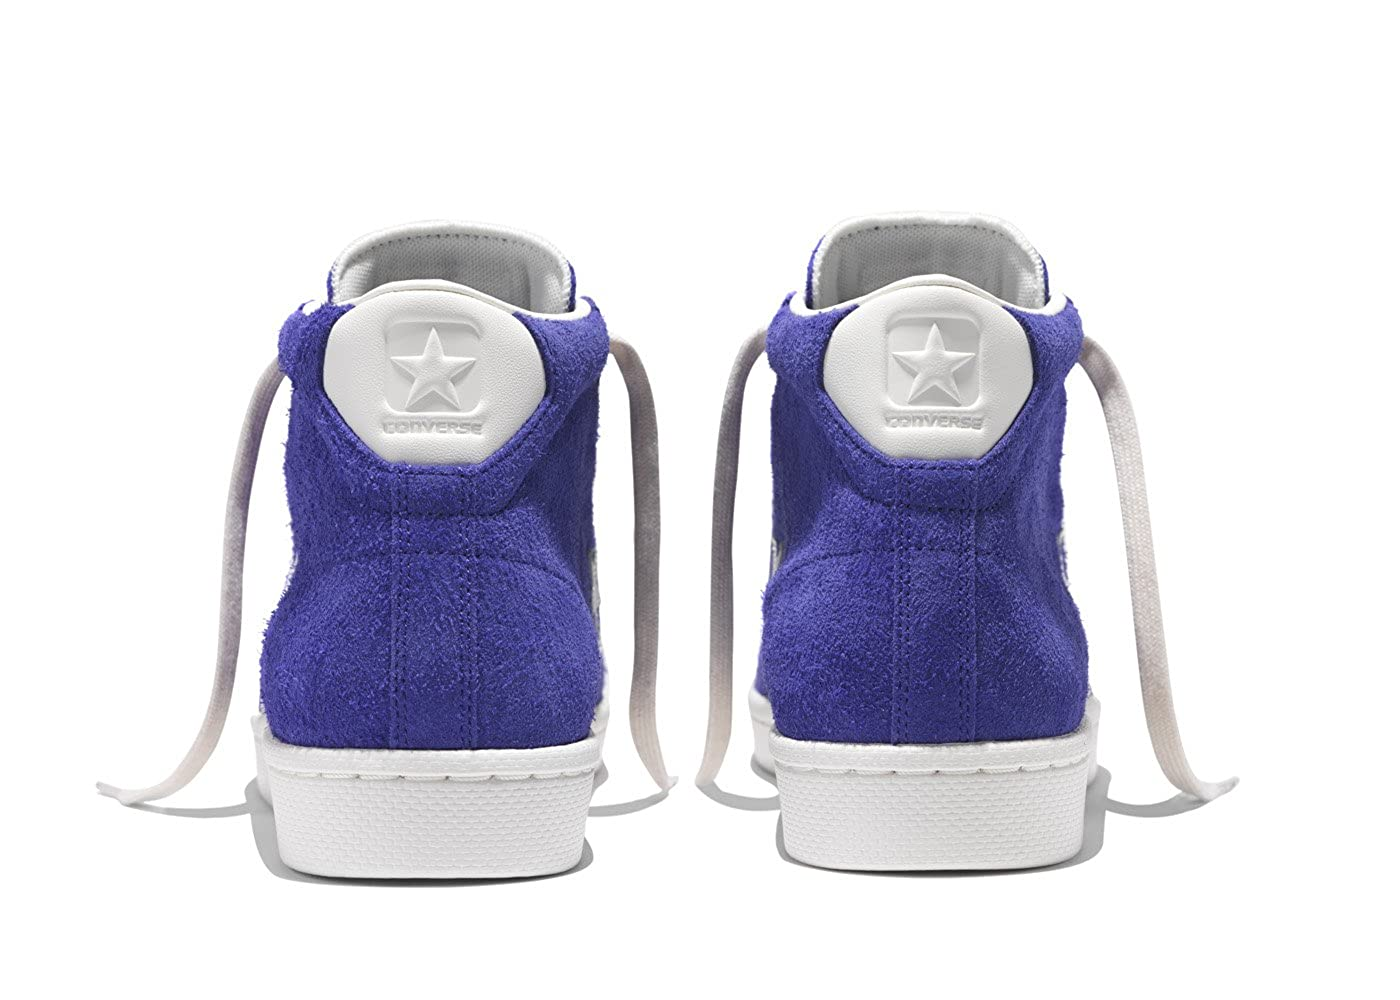 eaaef72e5b7 Converse Pro Leather 76 Mid Vintage Suede (44EUR - 10US